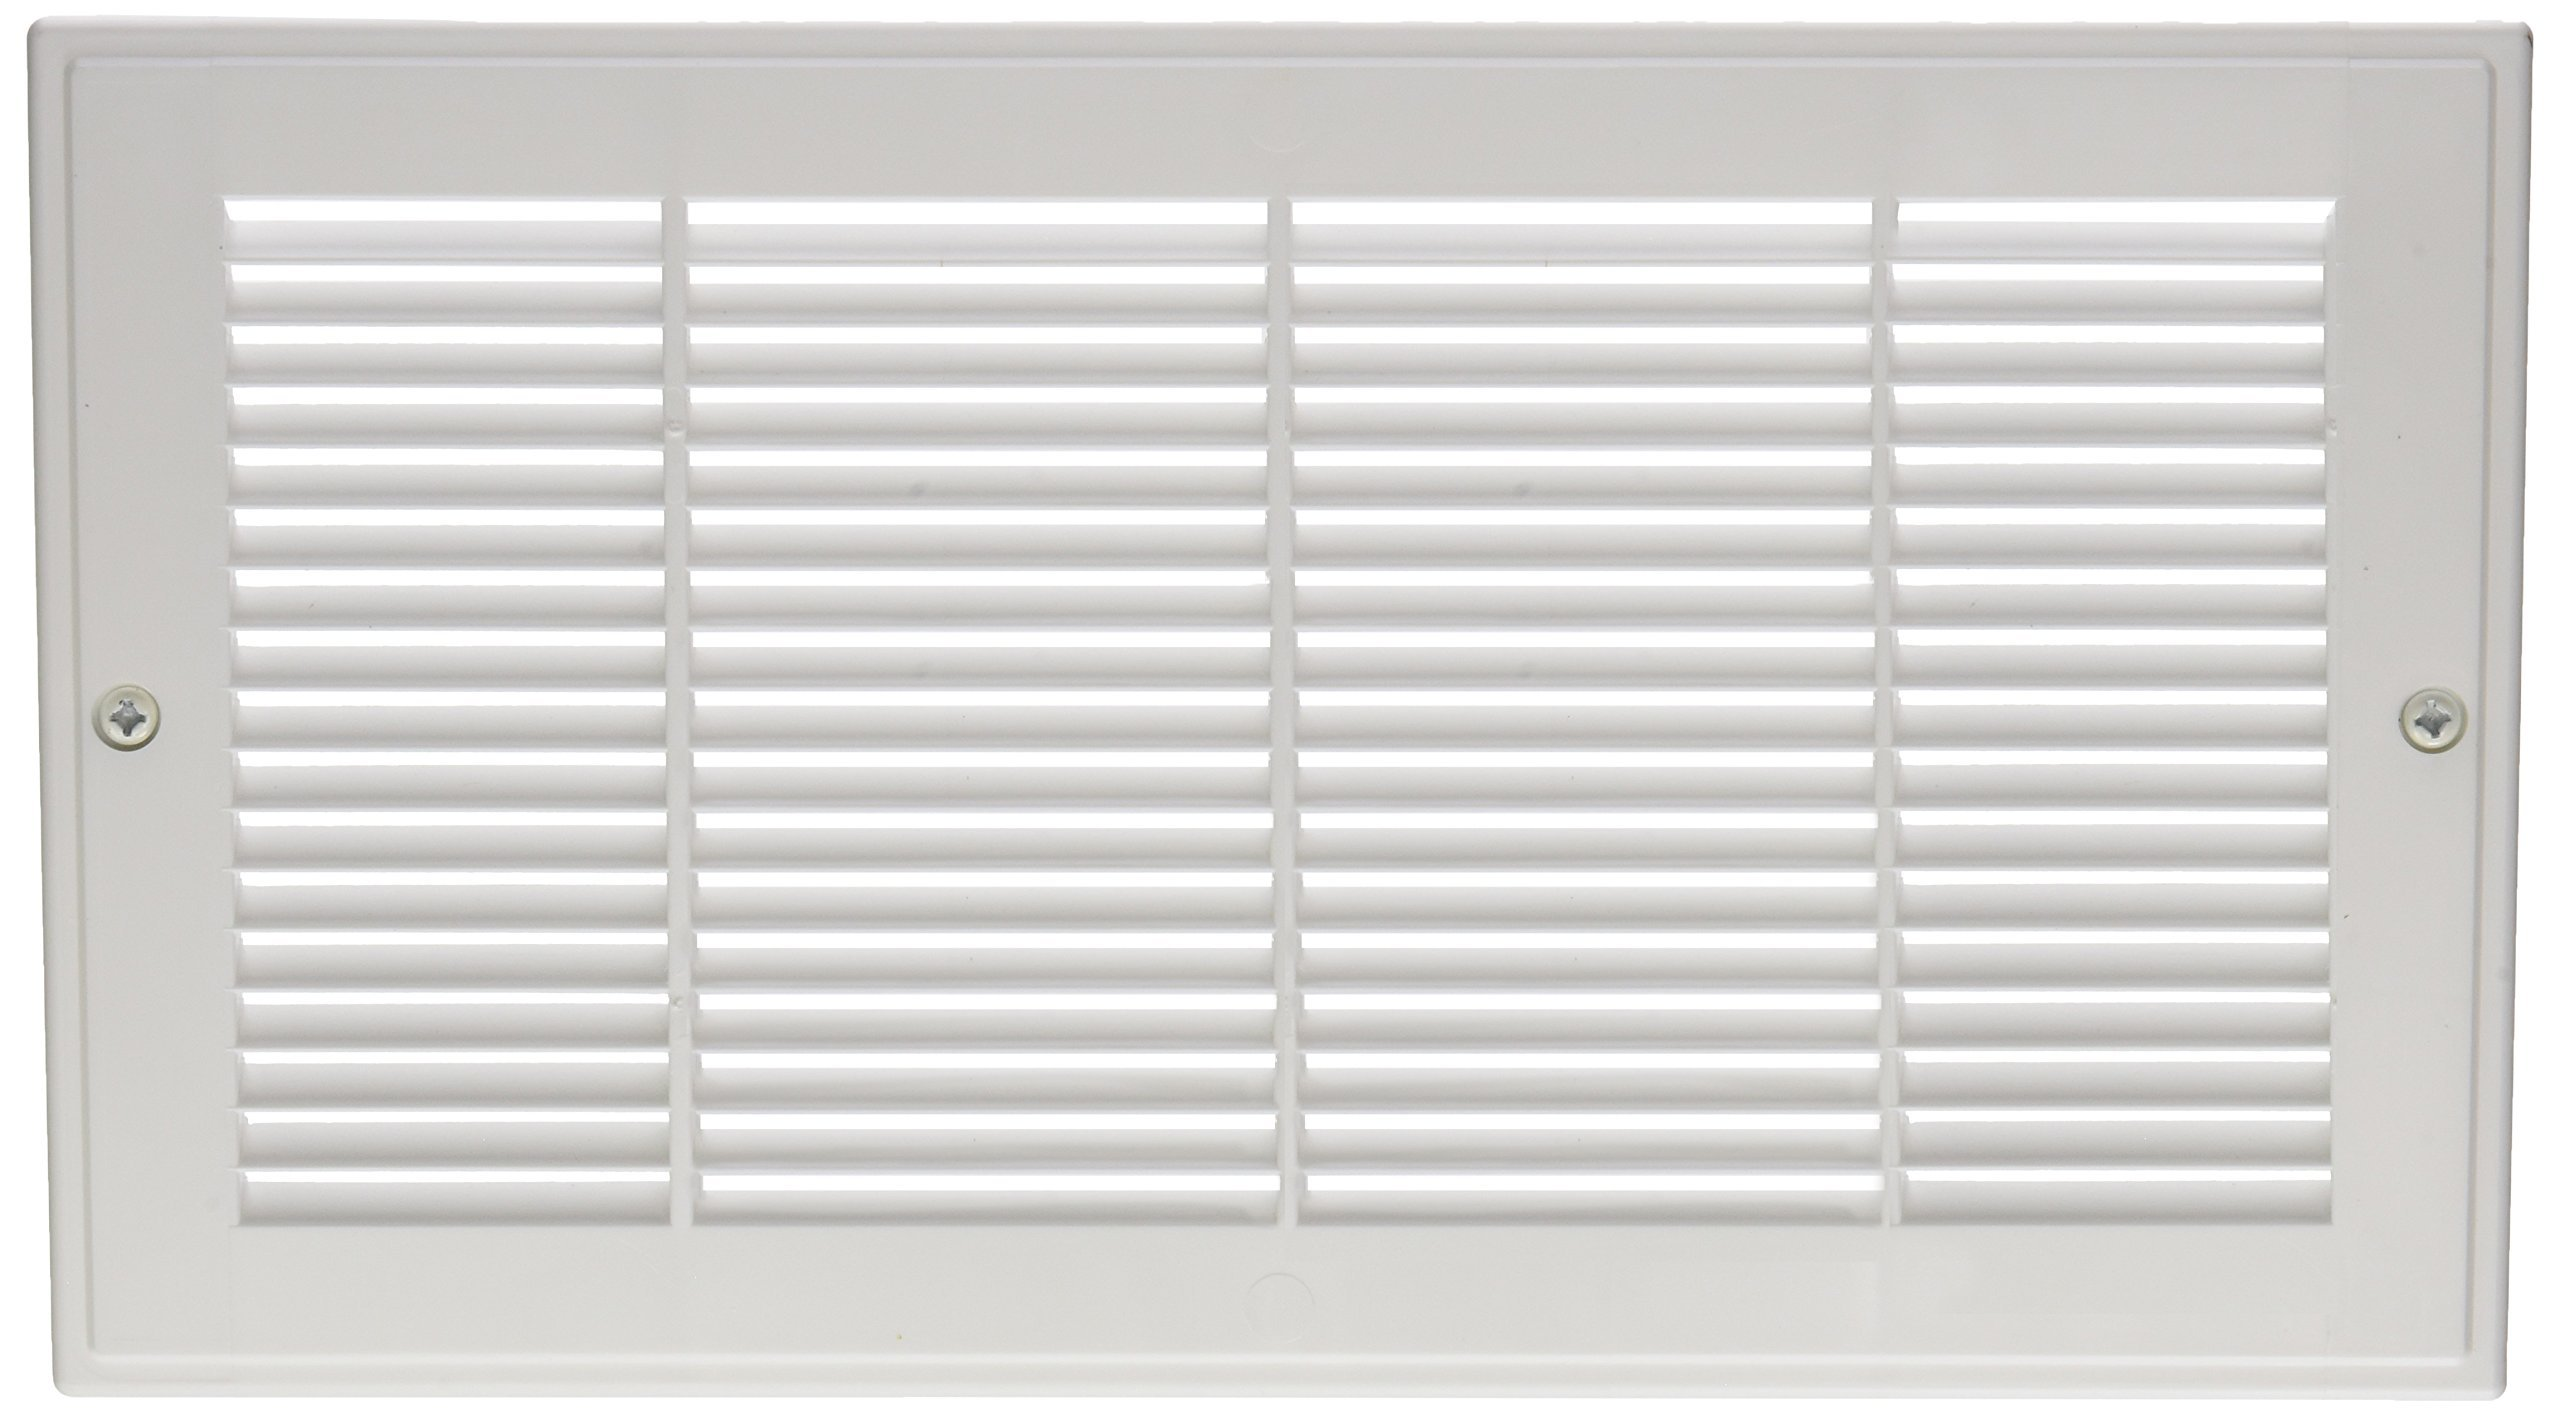 Imperial Manufacturing Rg3010 Sidewall Grille White